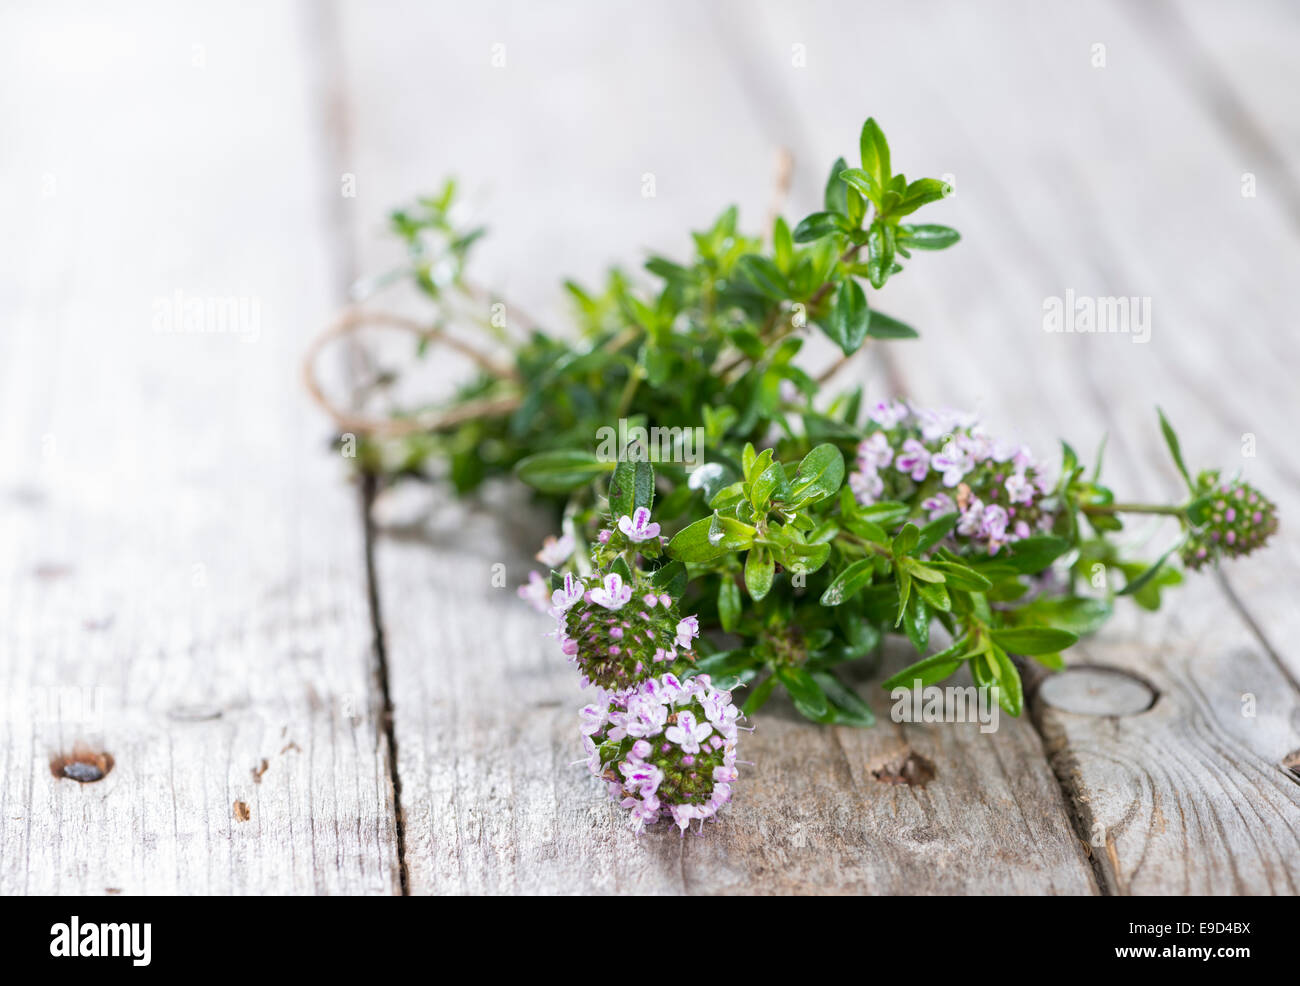 Small bunch of fresh Winter Savory (close-up shot) - Stock Image